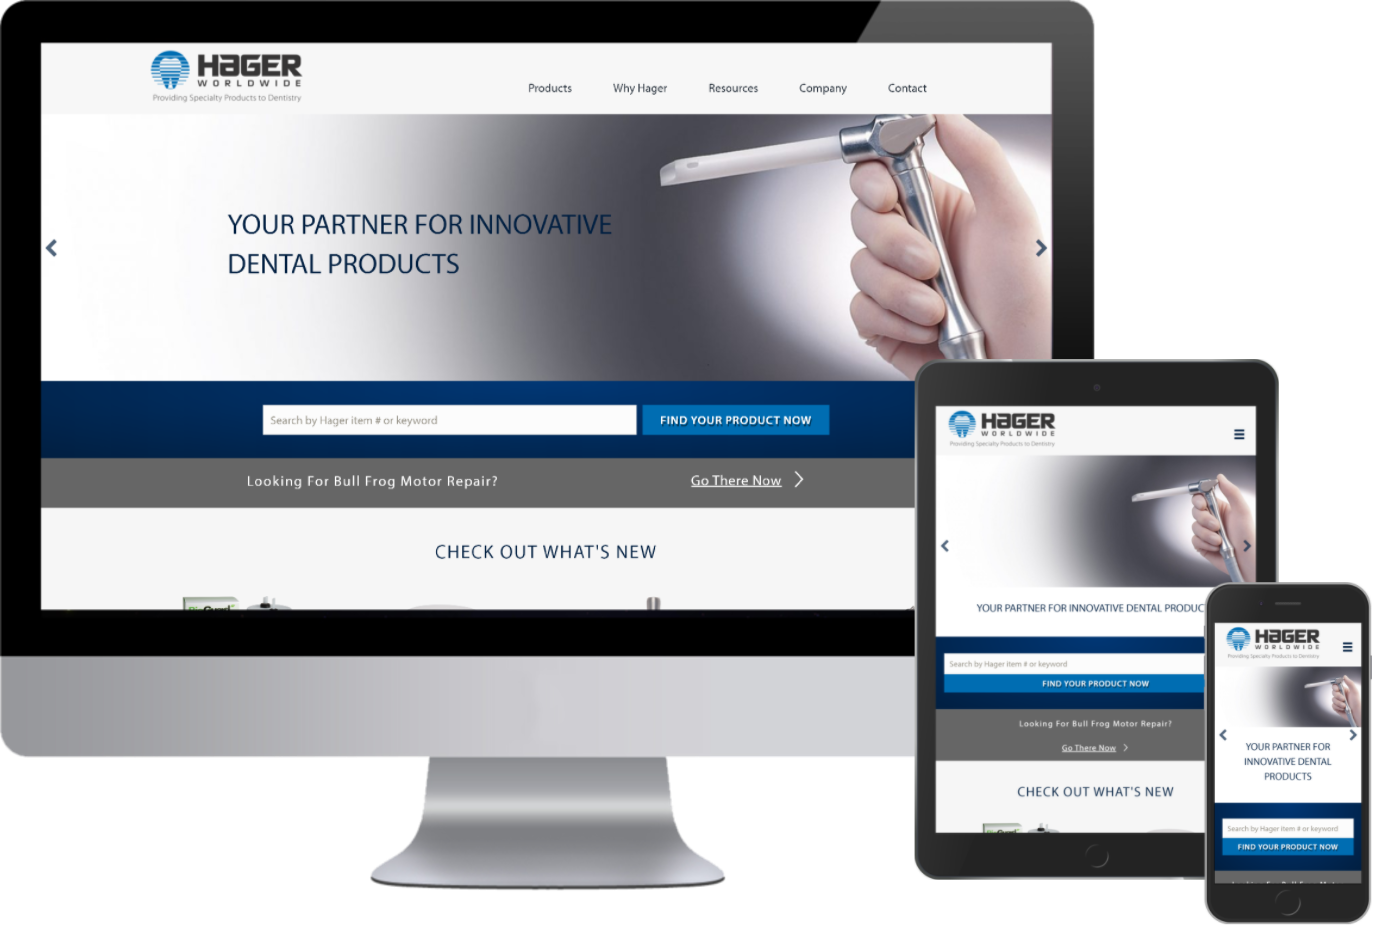 Hager Worldwide Responsive Images they now have a responsive website